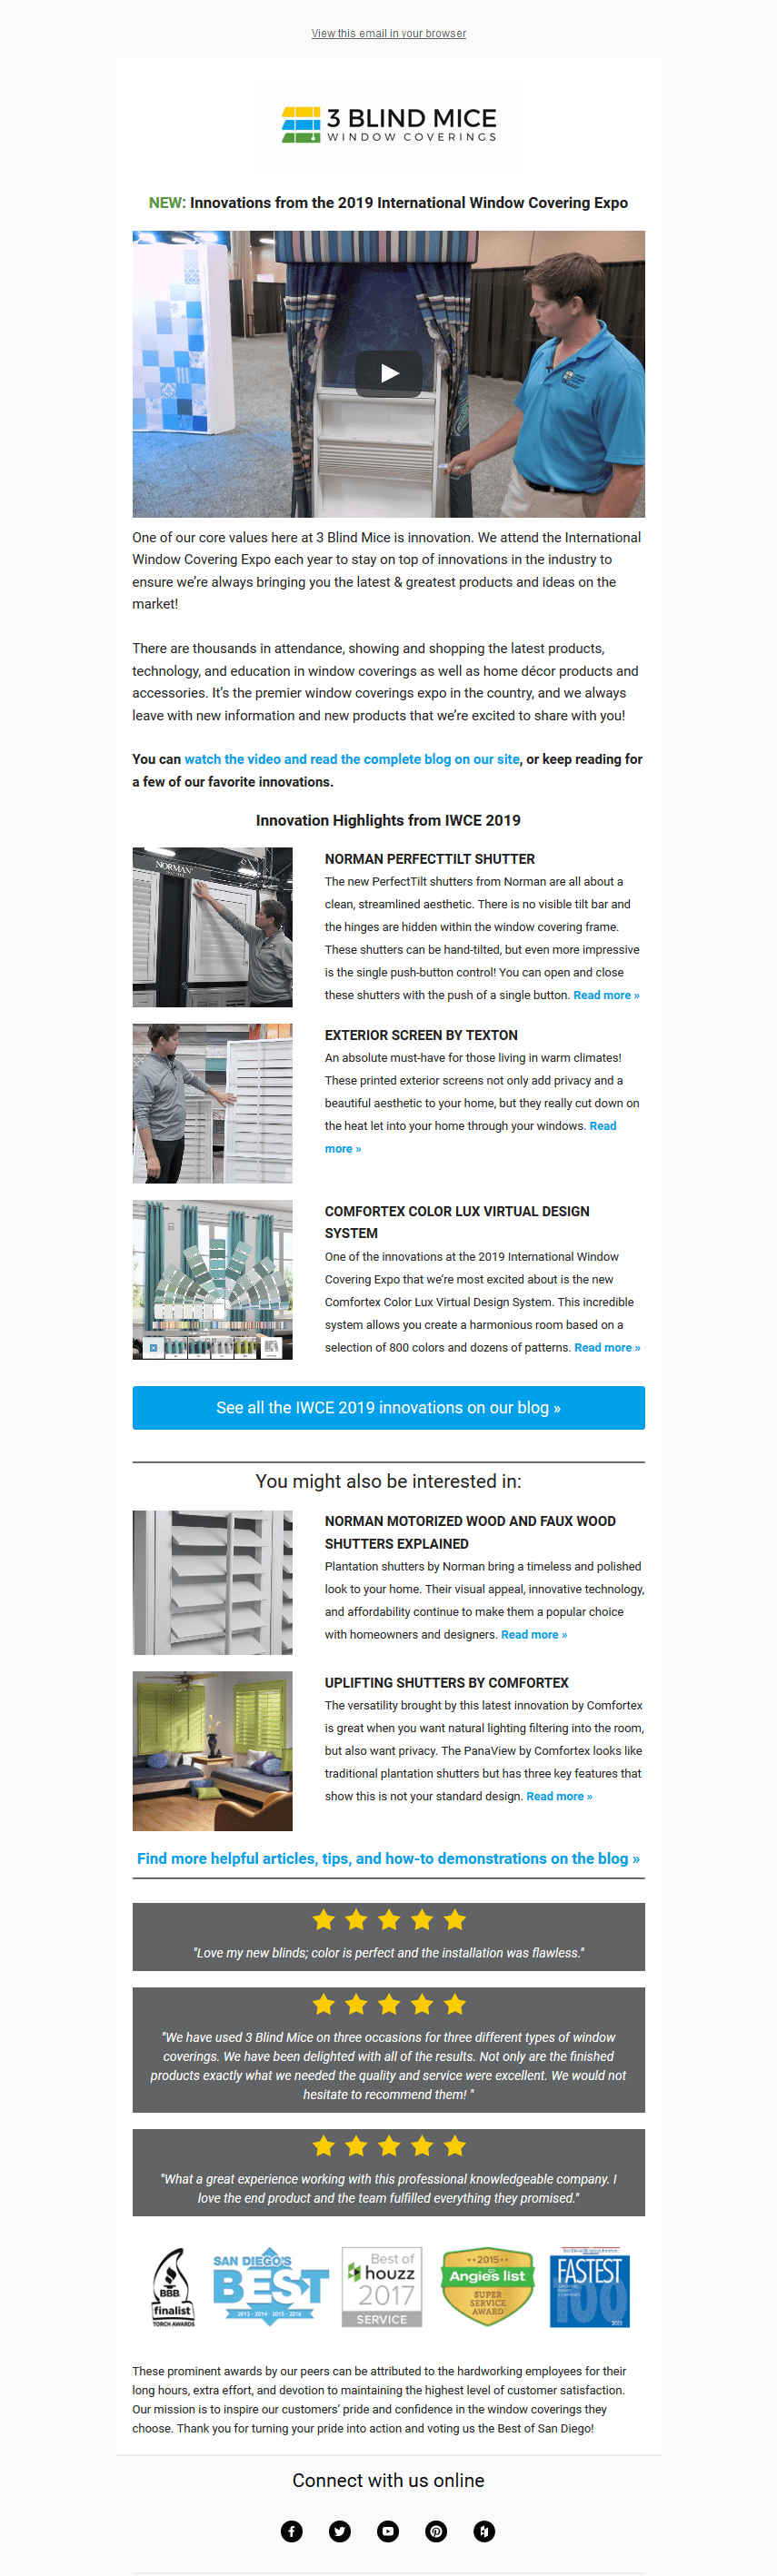 3 Blind Mice Responsive Email Design